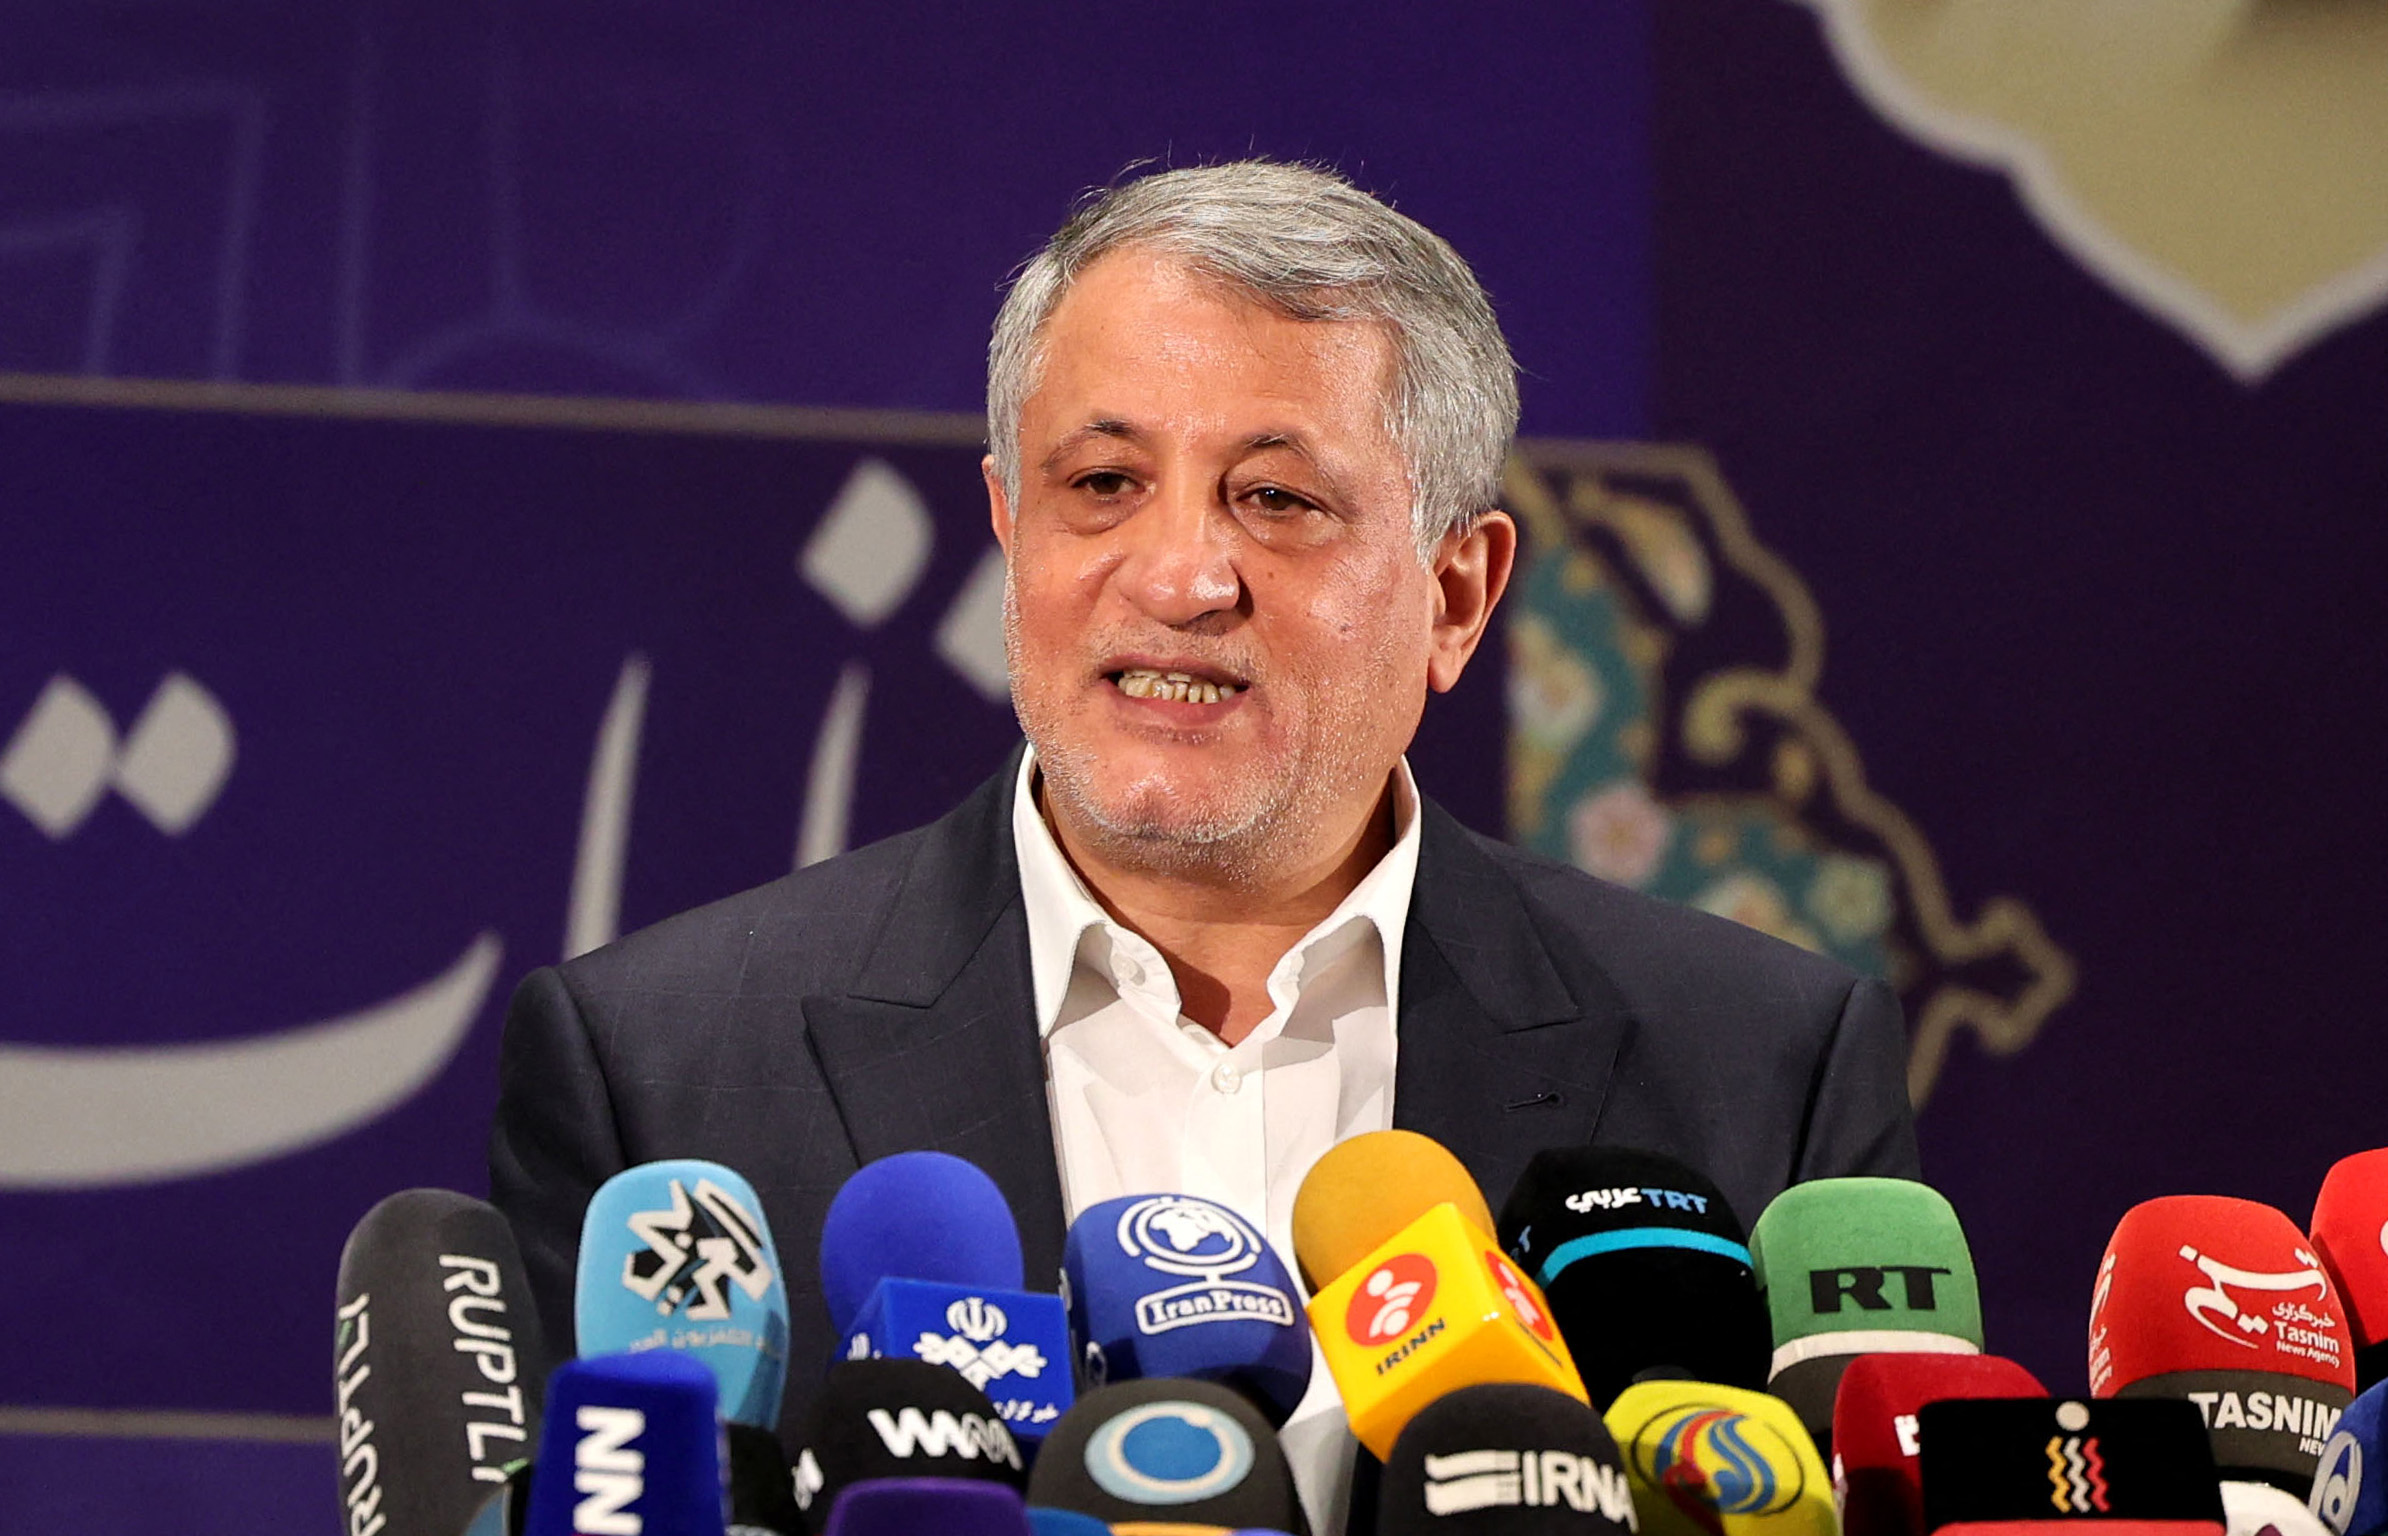 Mohsen Hashemi Rafsanjani, son of late former Iranian president Akbar Hashemi Rafsanjani, delivers a speech after registering his candidacy for Iran's presidential elections, at the Interior Ministry in capital Tehran, on May 15, 2021, ahead of the presidential elections scheduled for June. (Photo by ATTA KENARE / AFP) (Photo by ATTA KENARE/AFP via Getty Images)